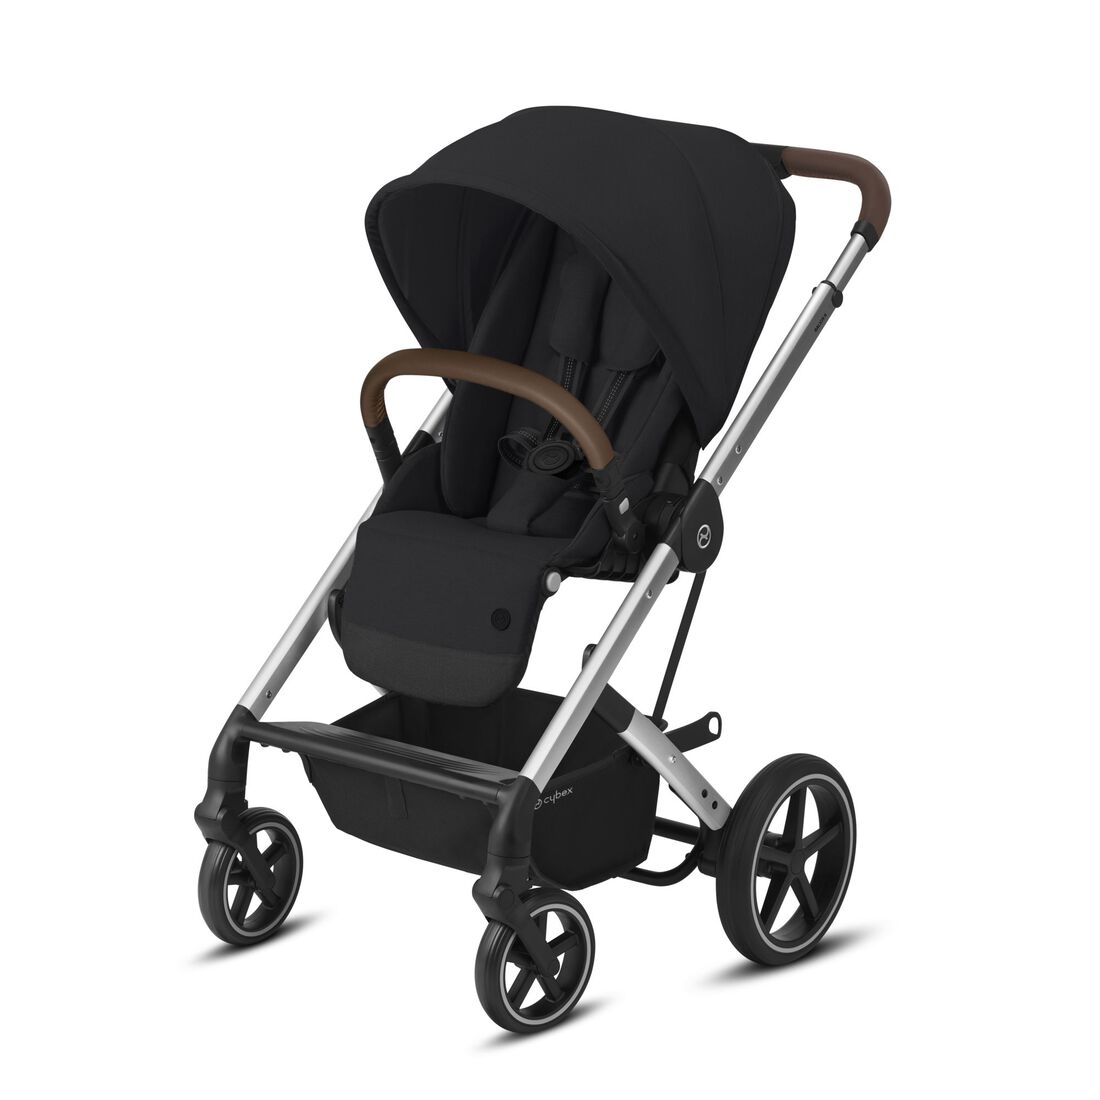 CYBEX Balios S Lux - Deep Black (Silver Frame) in Deep Black (Silver Frame) large image number 1